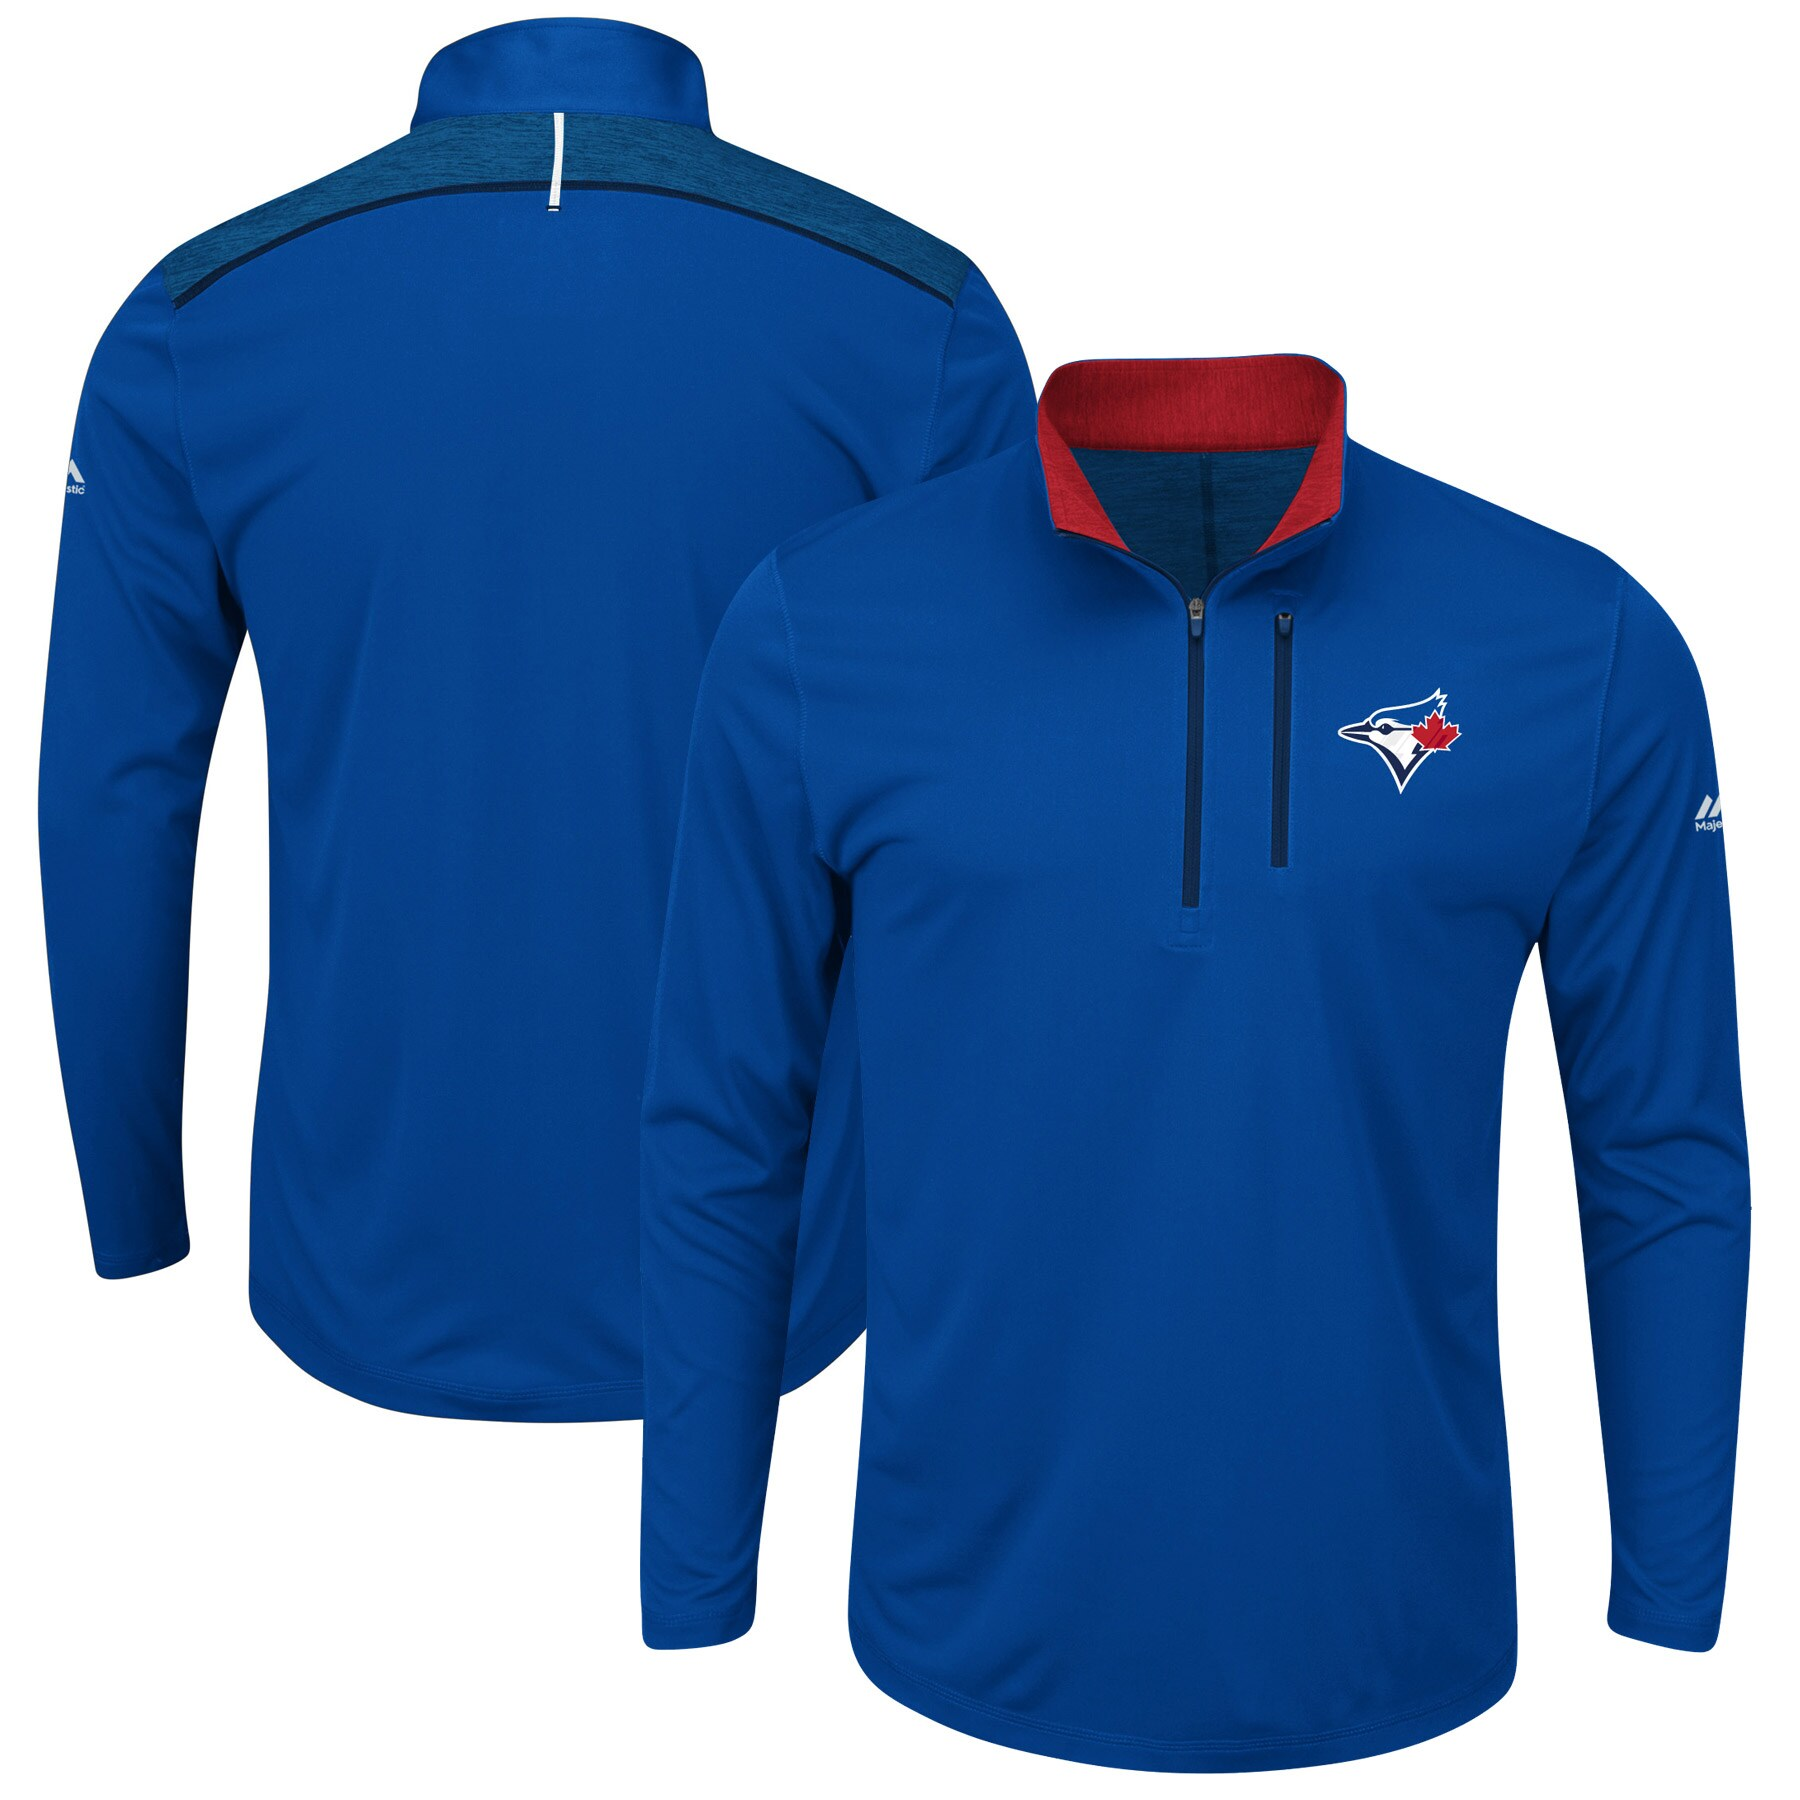 Toronto Blue Jays Majestic Big & Tall 643 Half-Zip Pullover Jacket - Royal